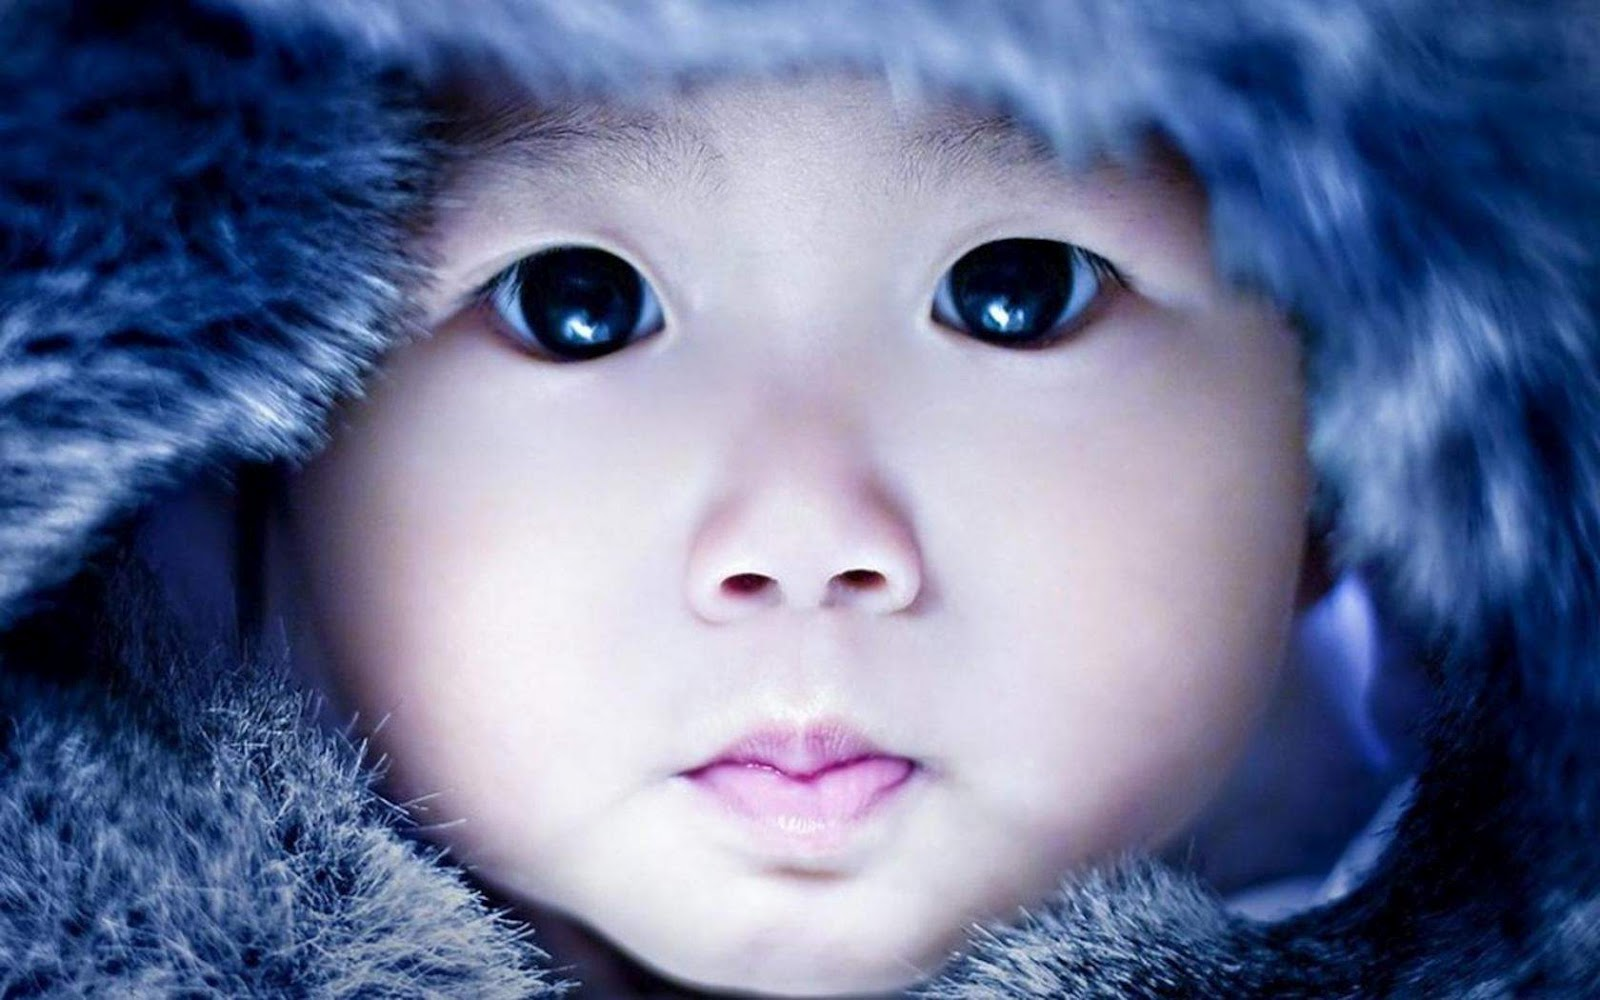 Wallpaper collection For Your computer and Mobile Phones: 20 Best collection of cute Baby Wallpapers